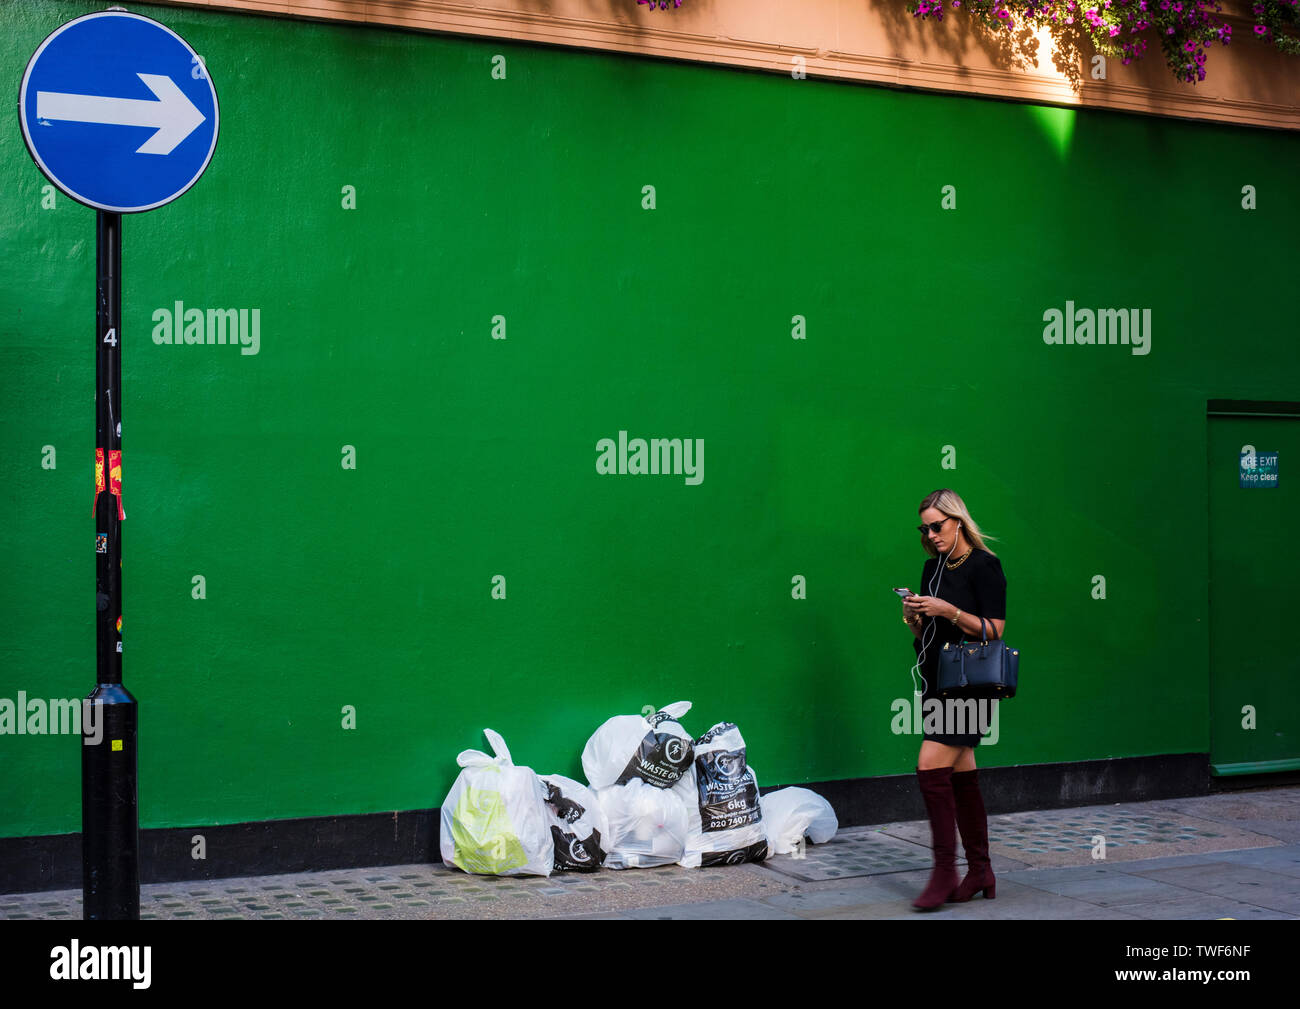 Young woman carrying handbag and using smartphone while walking past green painted wall with rubbish bags in front of it in Central London. - Stock Image